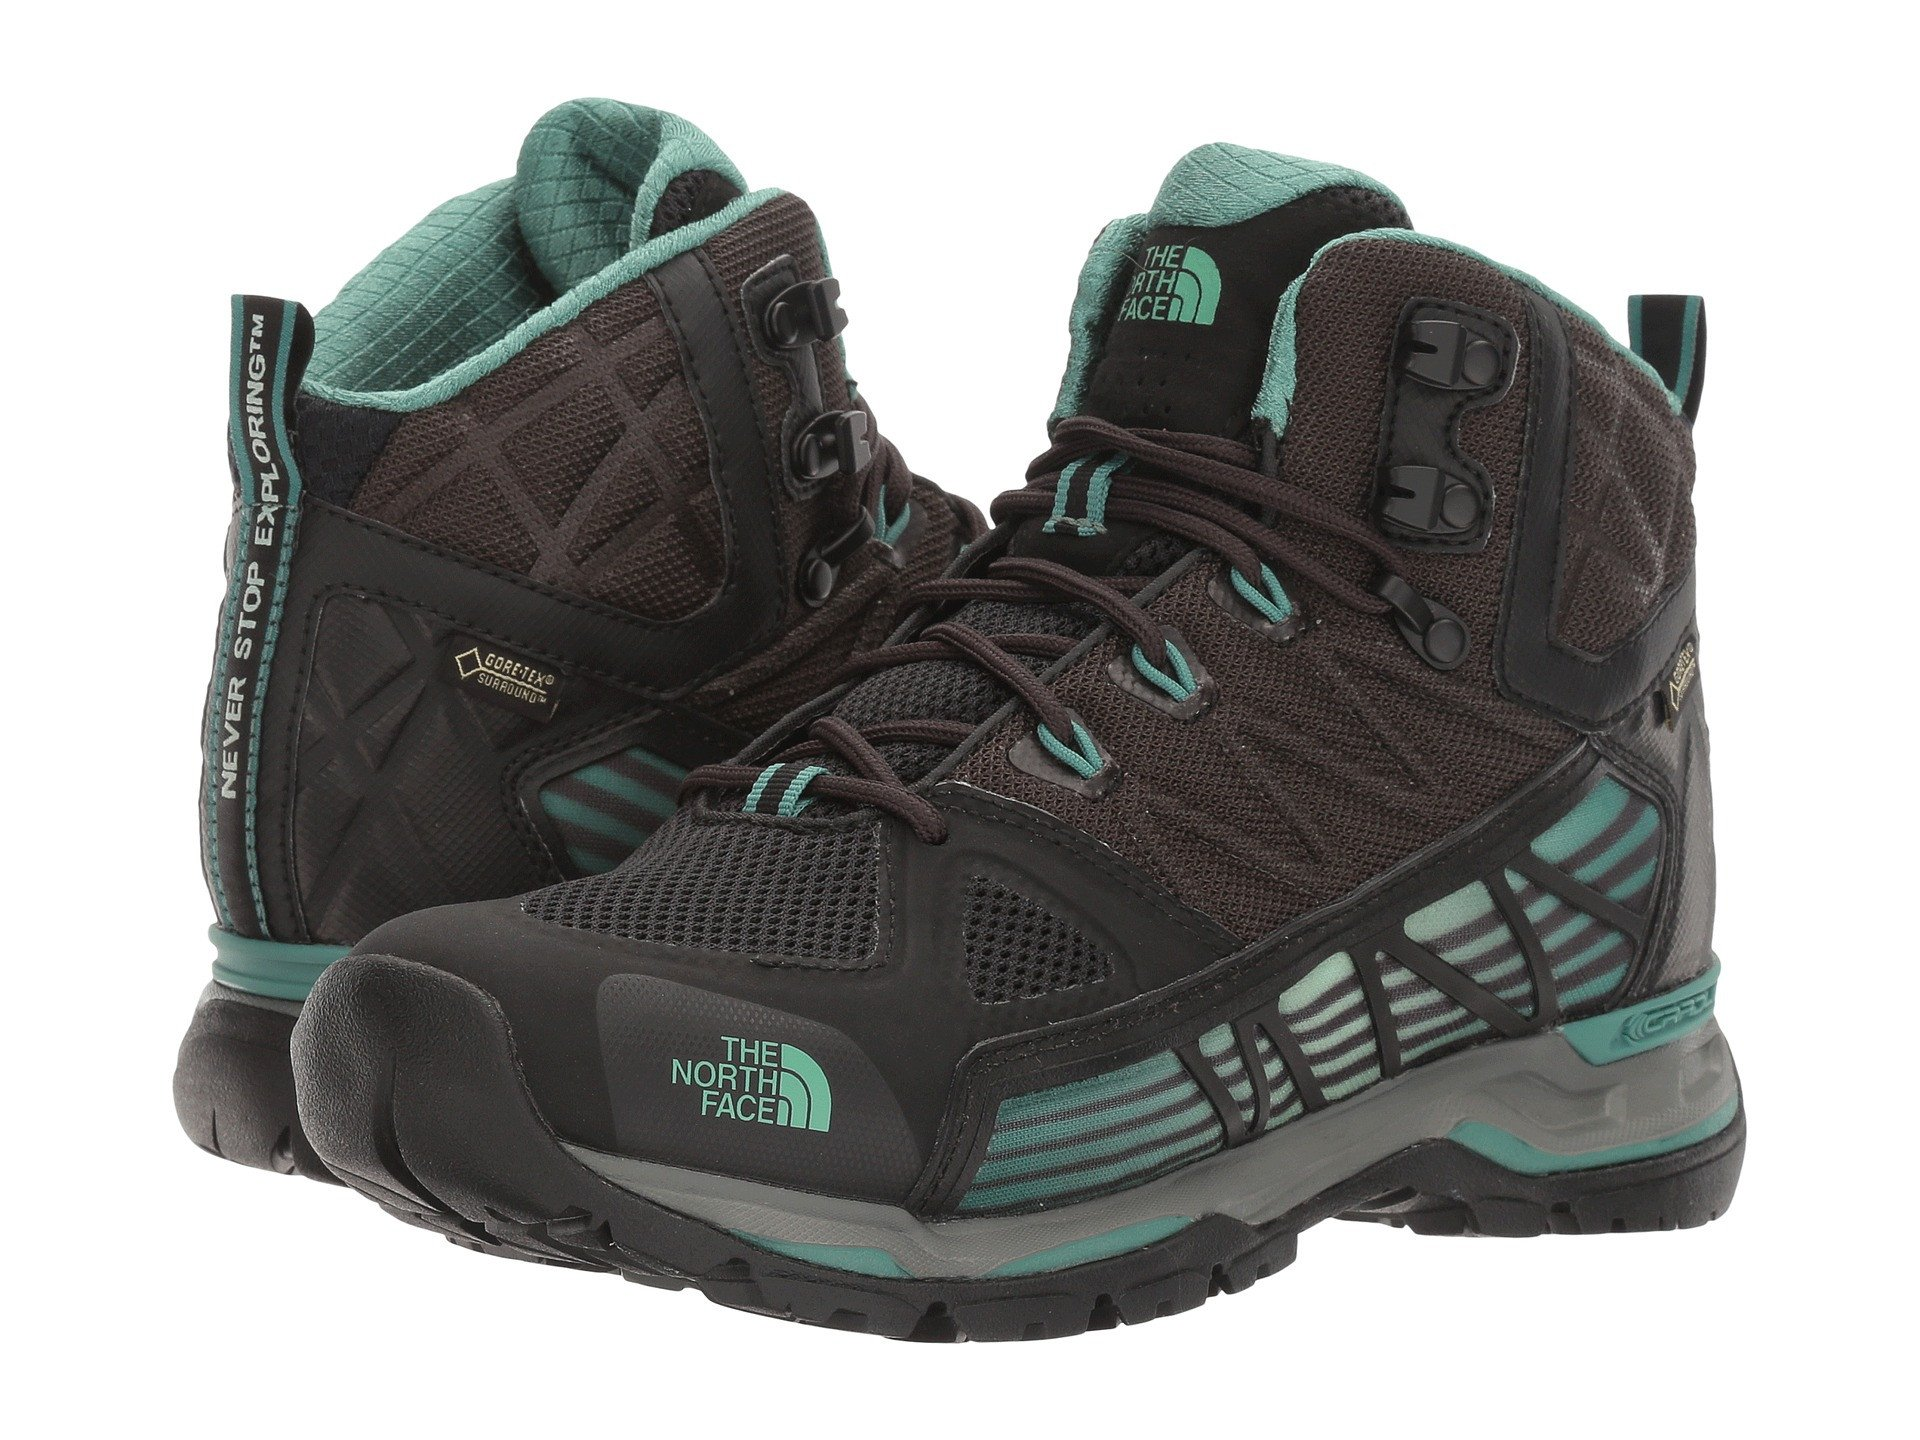 best service cae00 033a3 Details about THE NORTH FACE Ultra GTX Surround Mid Women | TNF Black /  Deep Sea (NF0A2T64)